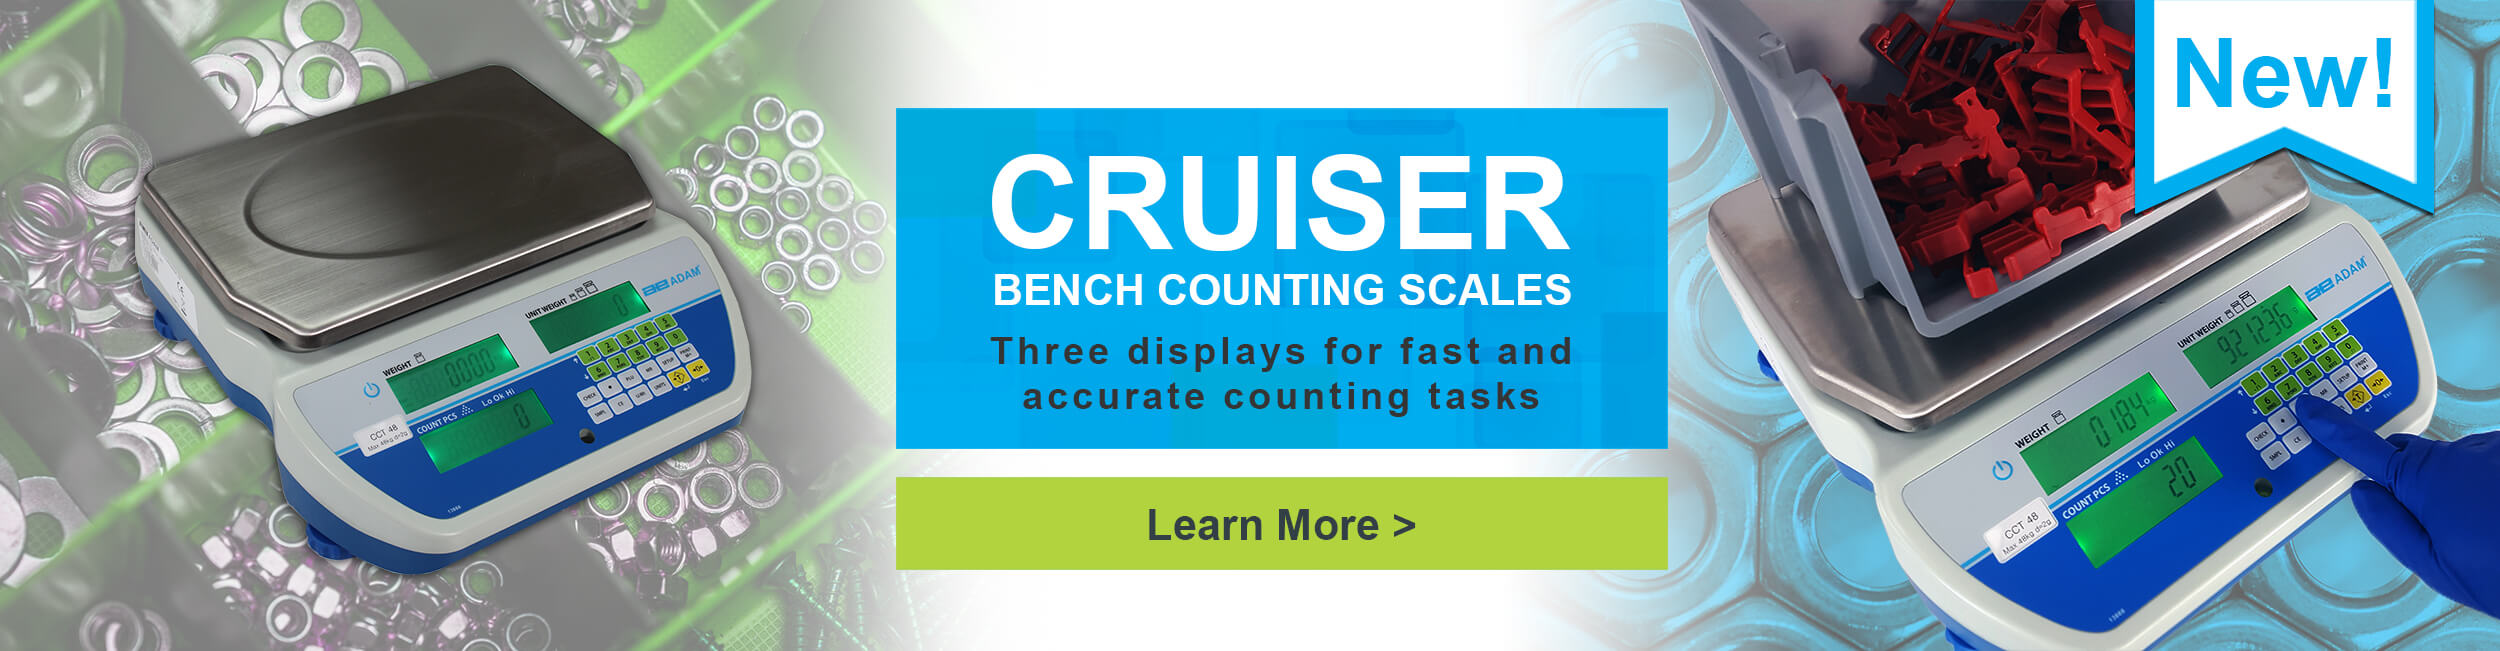 New! Cruiser Bench Counting Scales. Three displays for fast and accurate counting tasks.